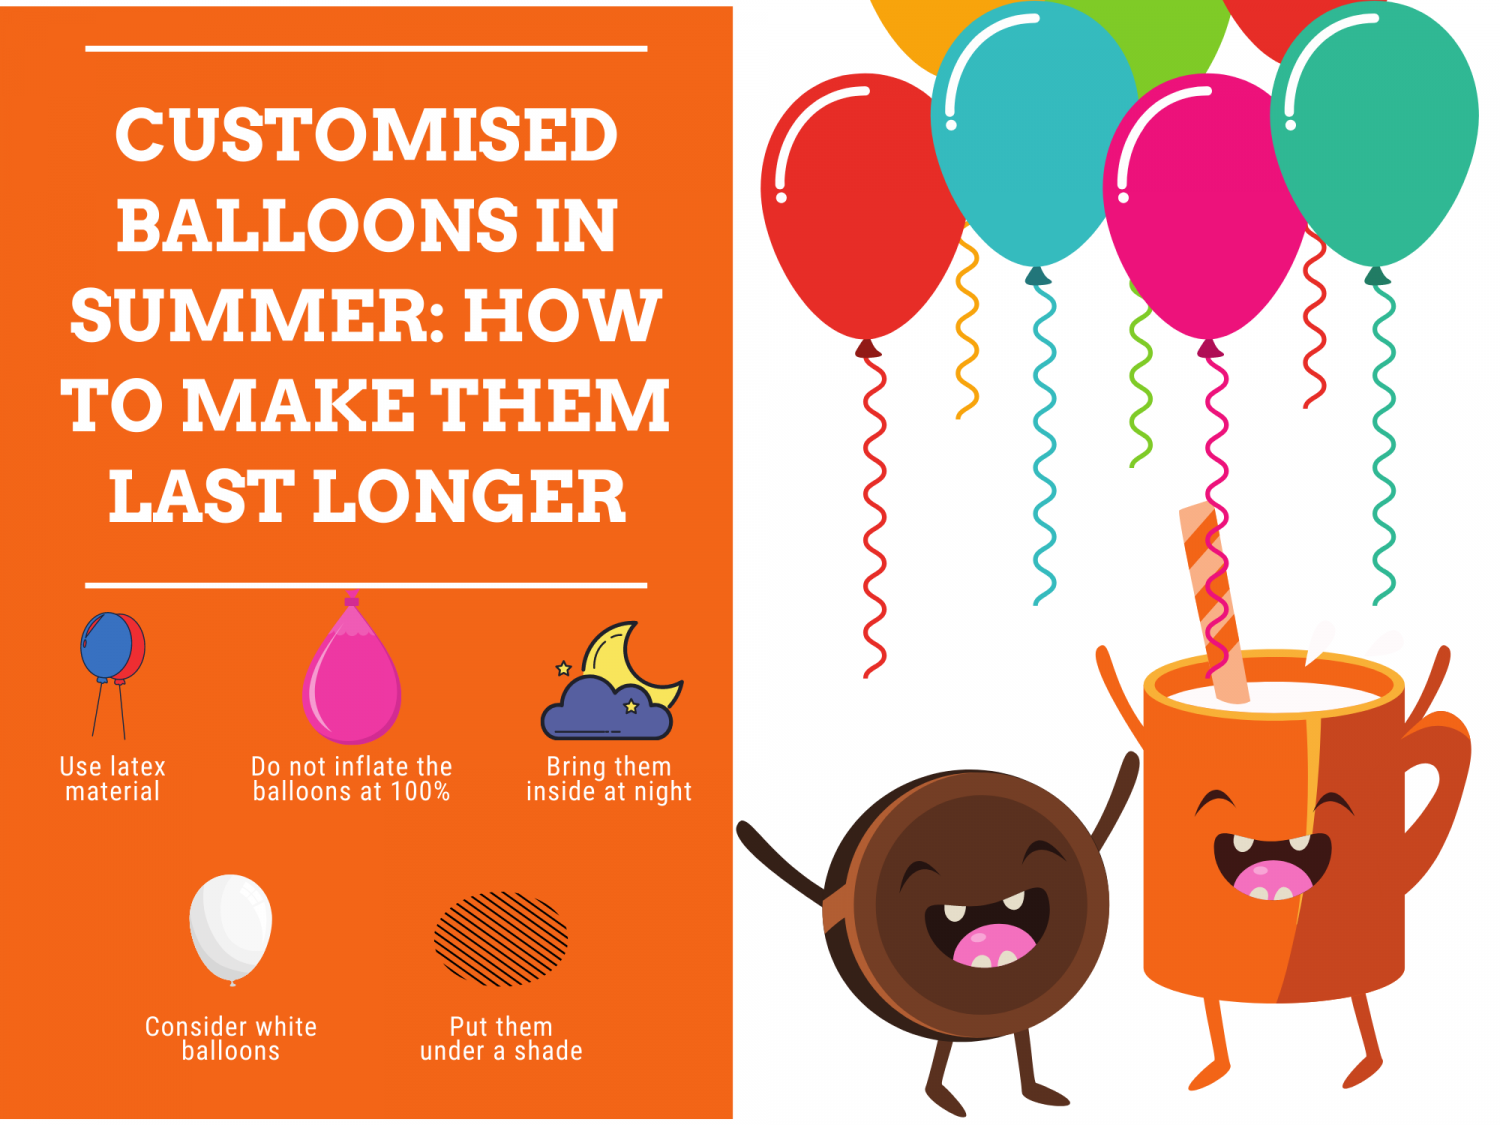 Customised Balloons in Summer: How to Make them Last Longer Infographic